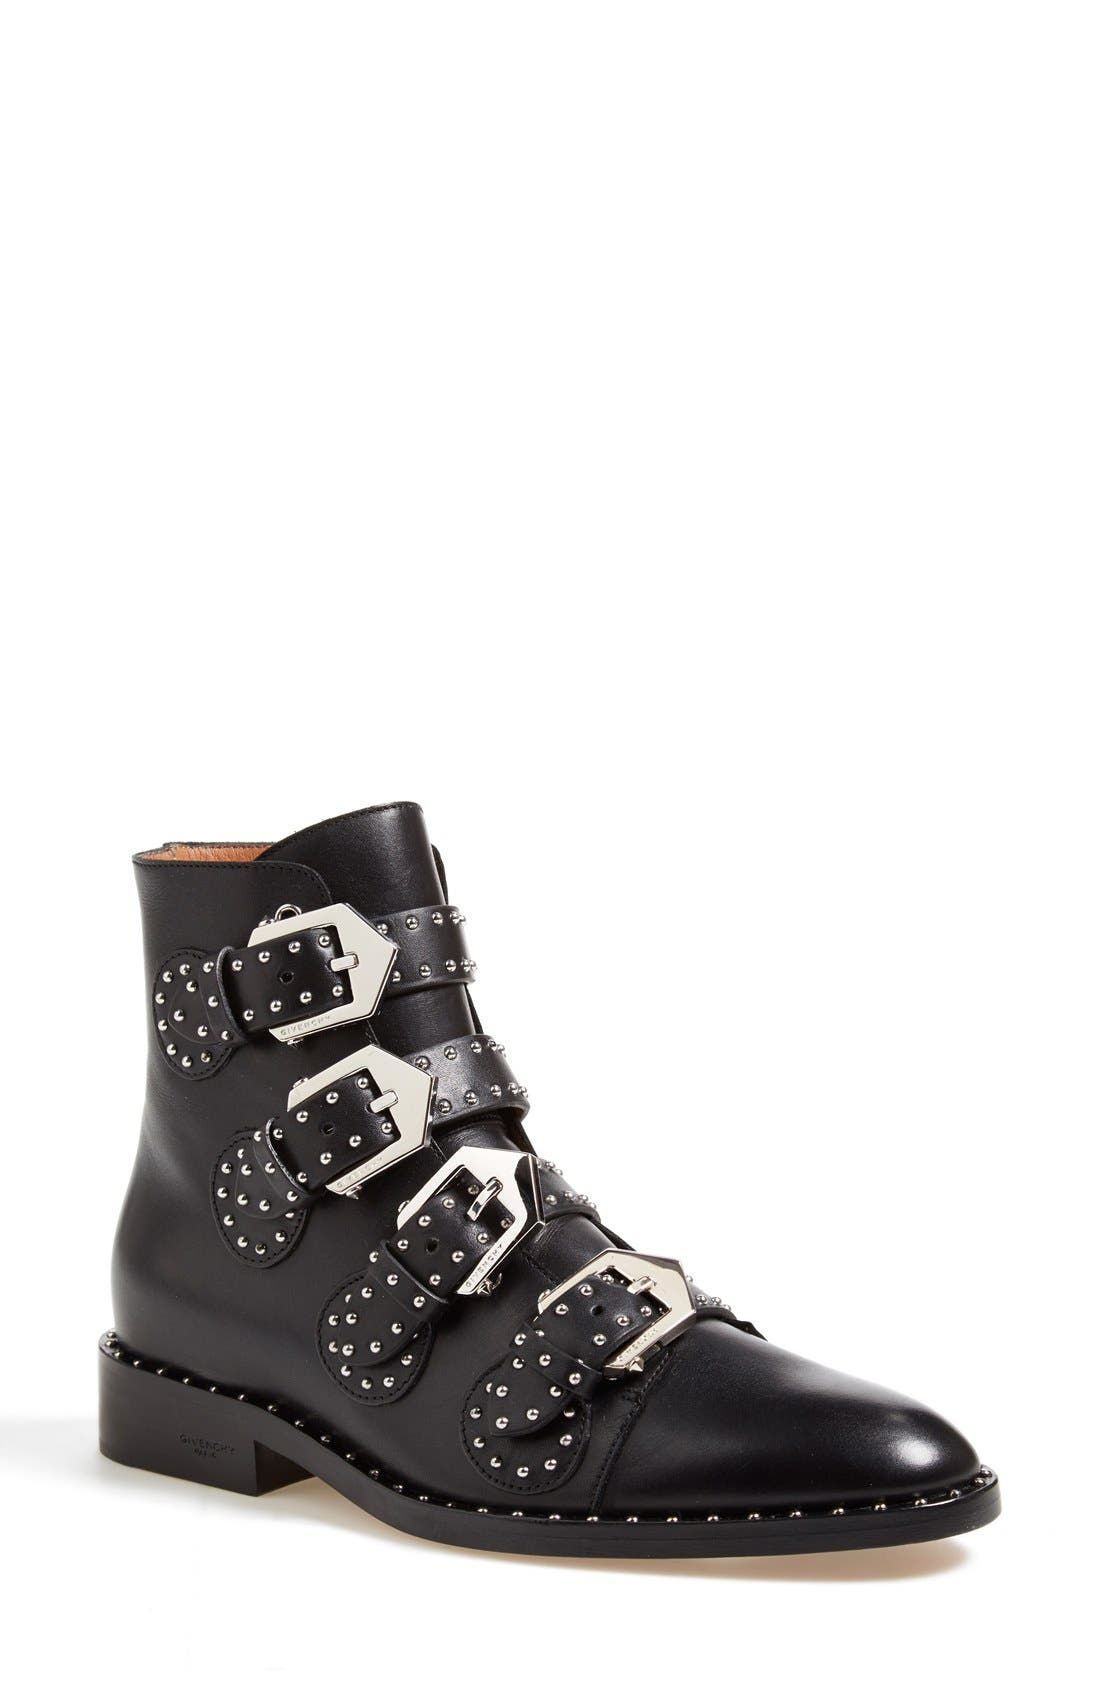 7191780e9c66 Givenchy Shoes for Women